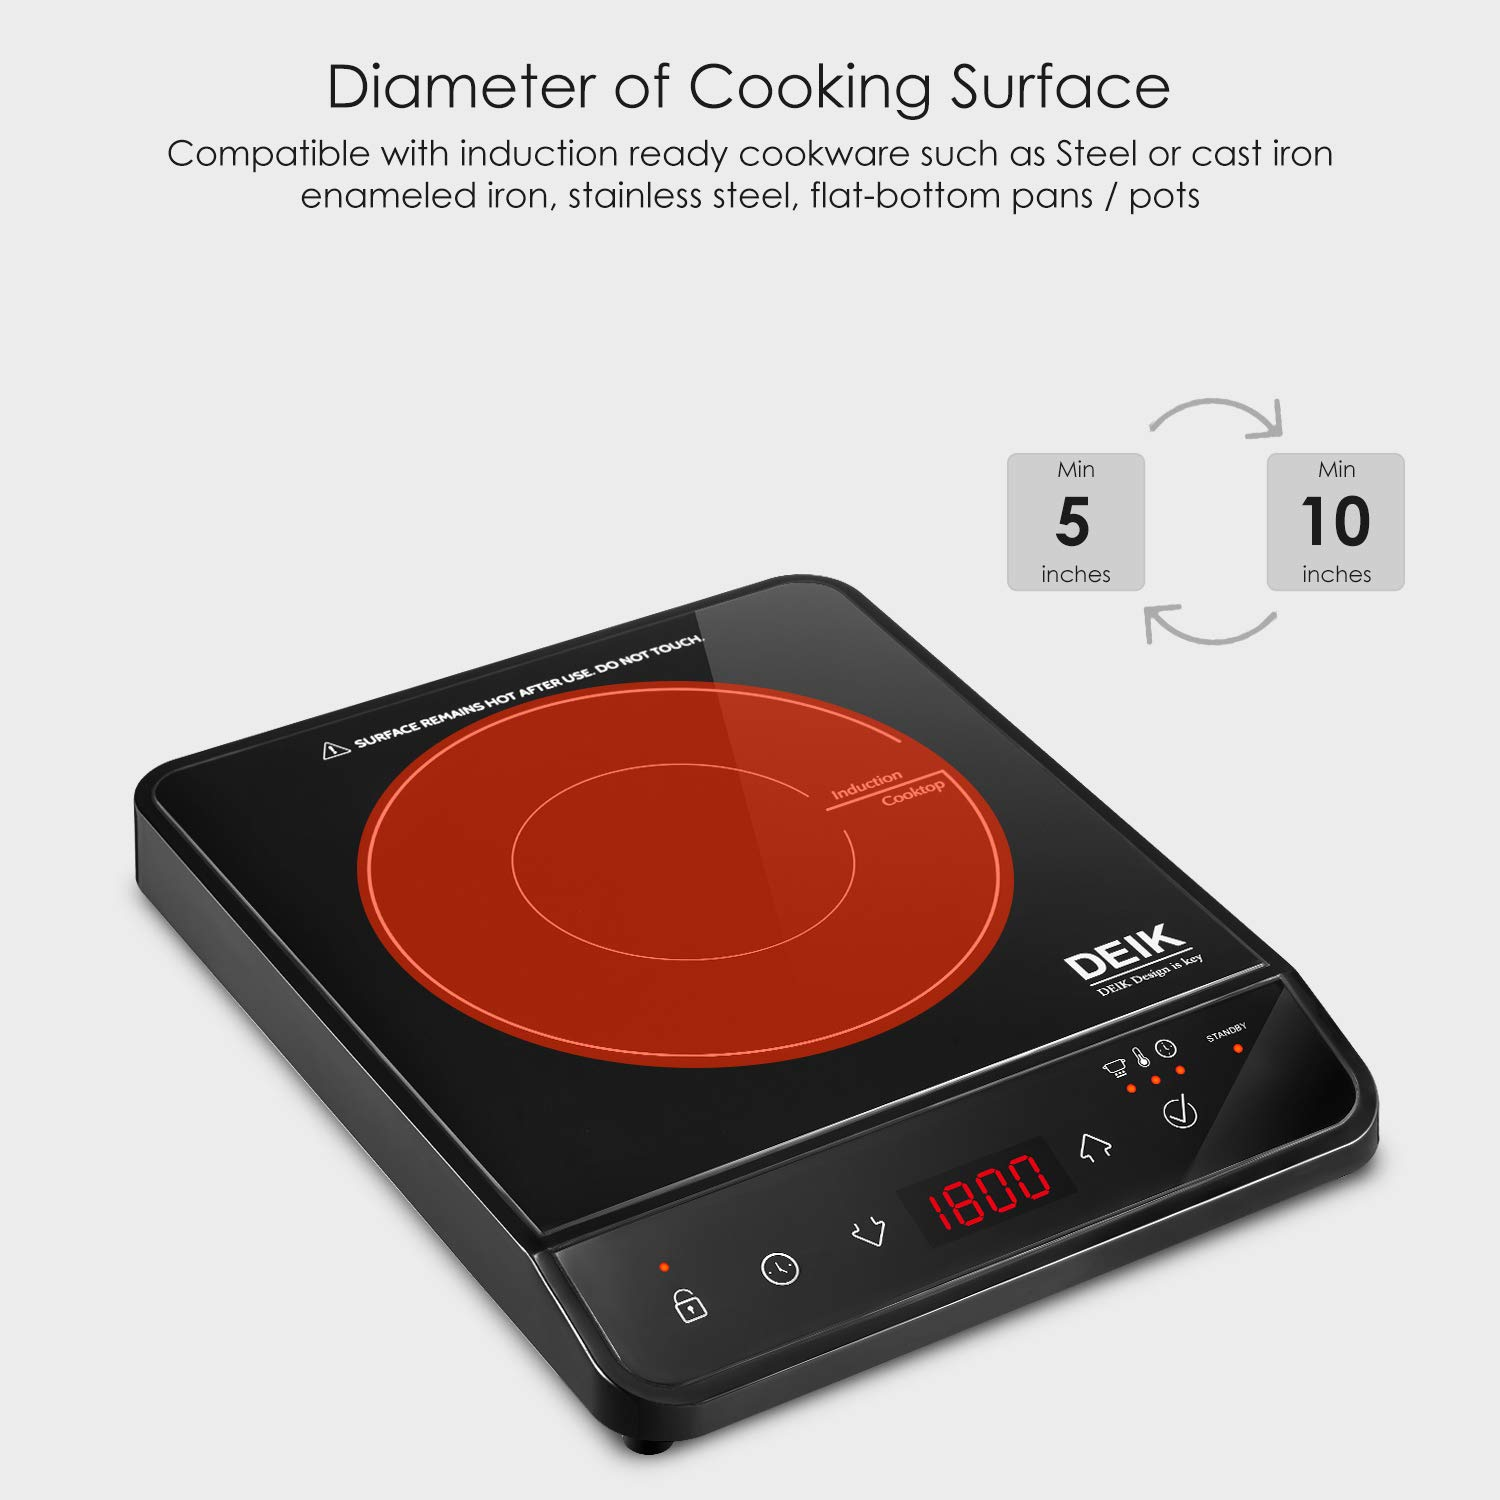 Induction Cooktop, Deik Induction Burner 1800W Sensor Touch with Child Safety Lock, Portable Induction Cooktop with Timer and 10 Temperature Settings, Suitable for Home Kitchen, RV, Boats, Garden by Deik (Image #6)